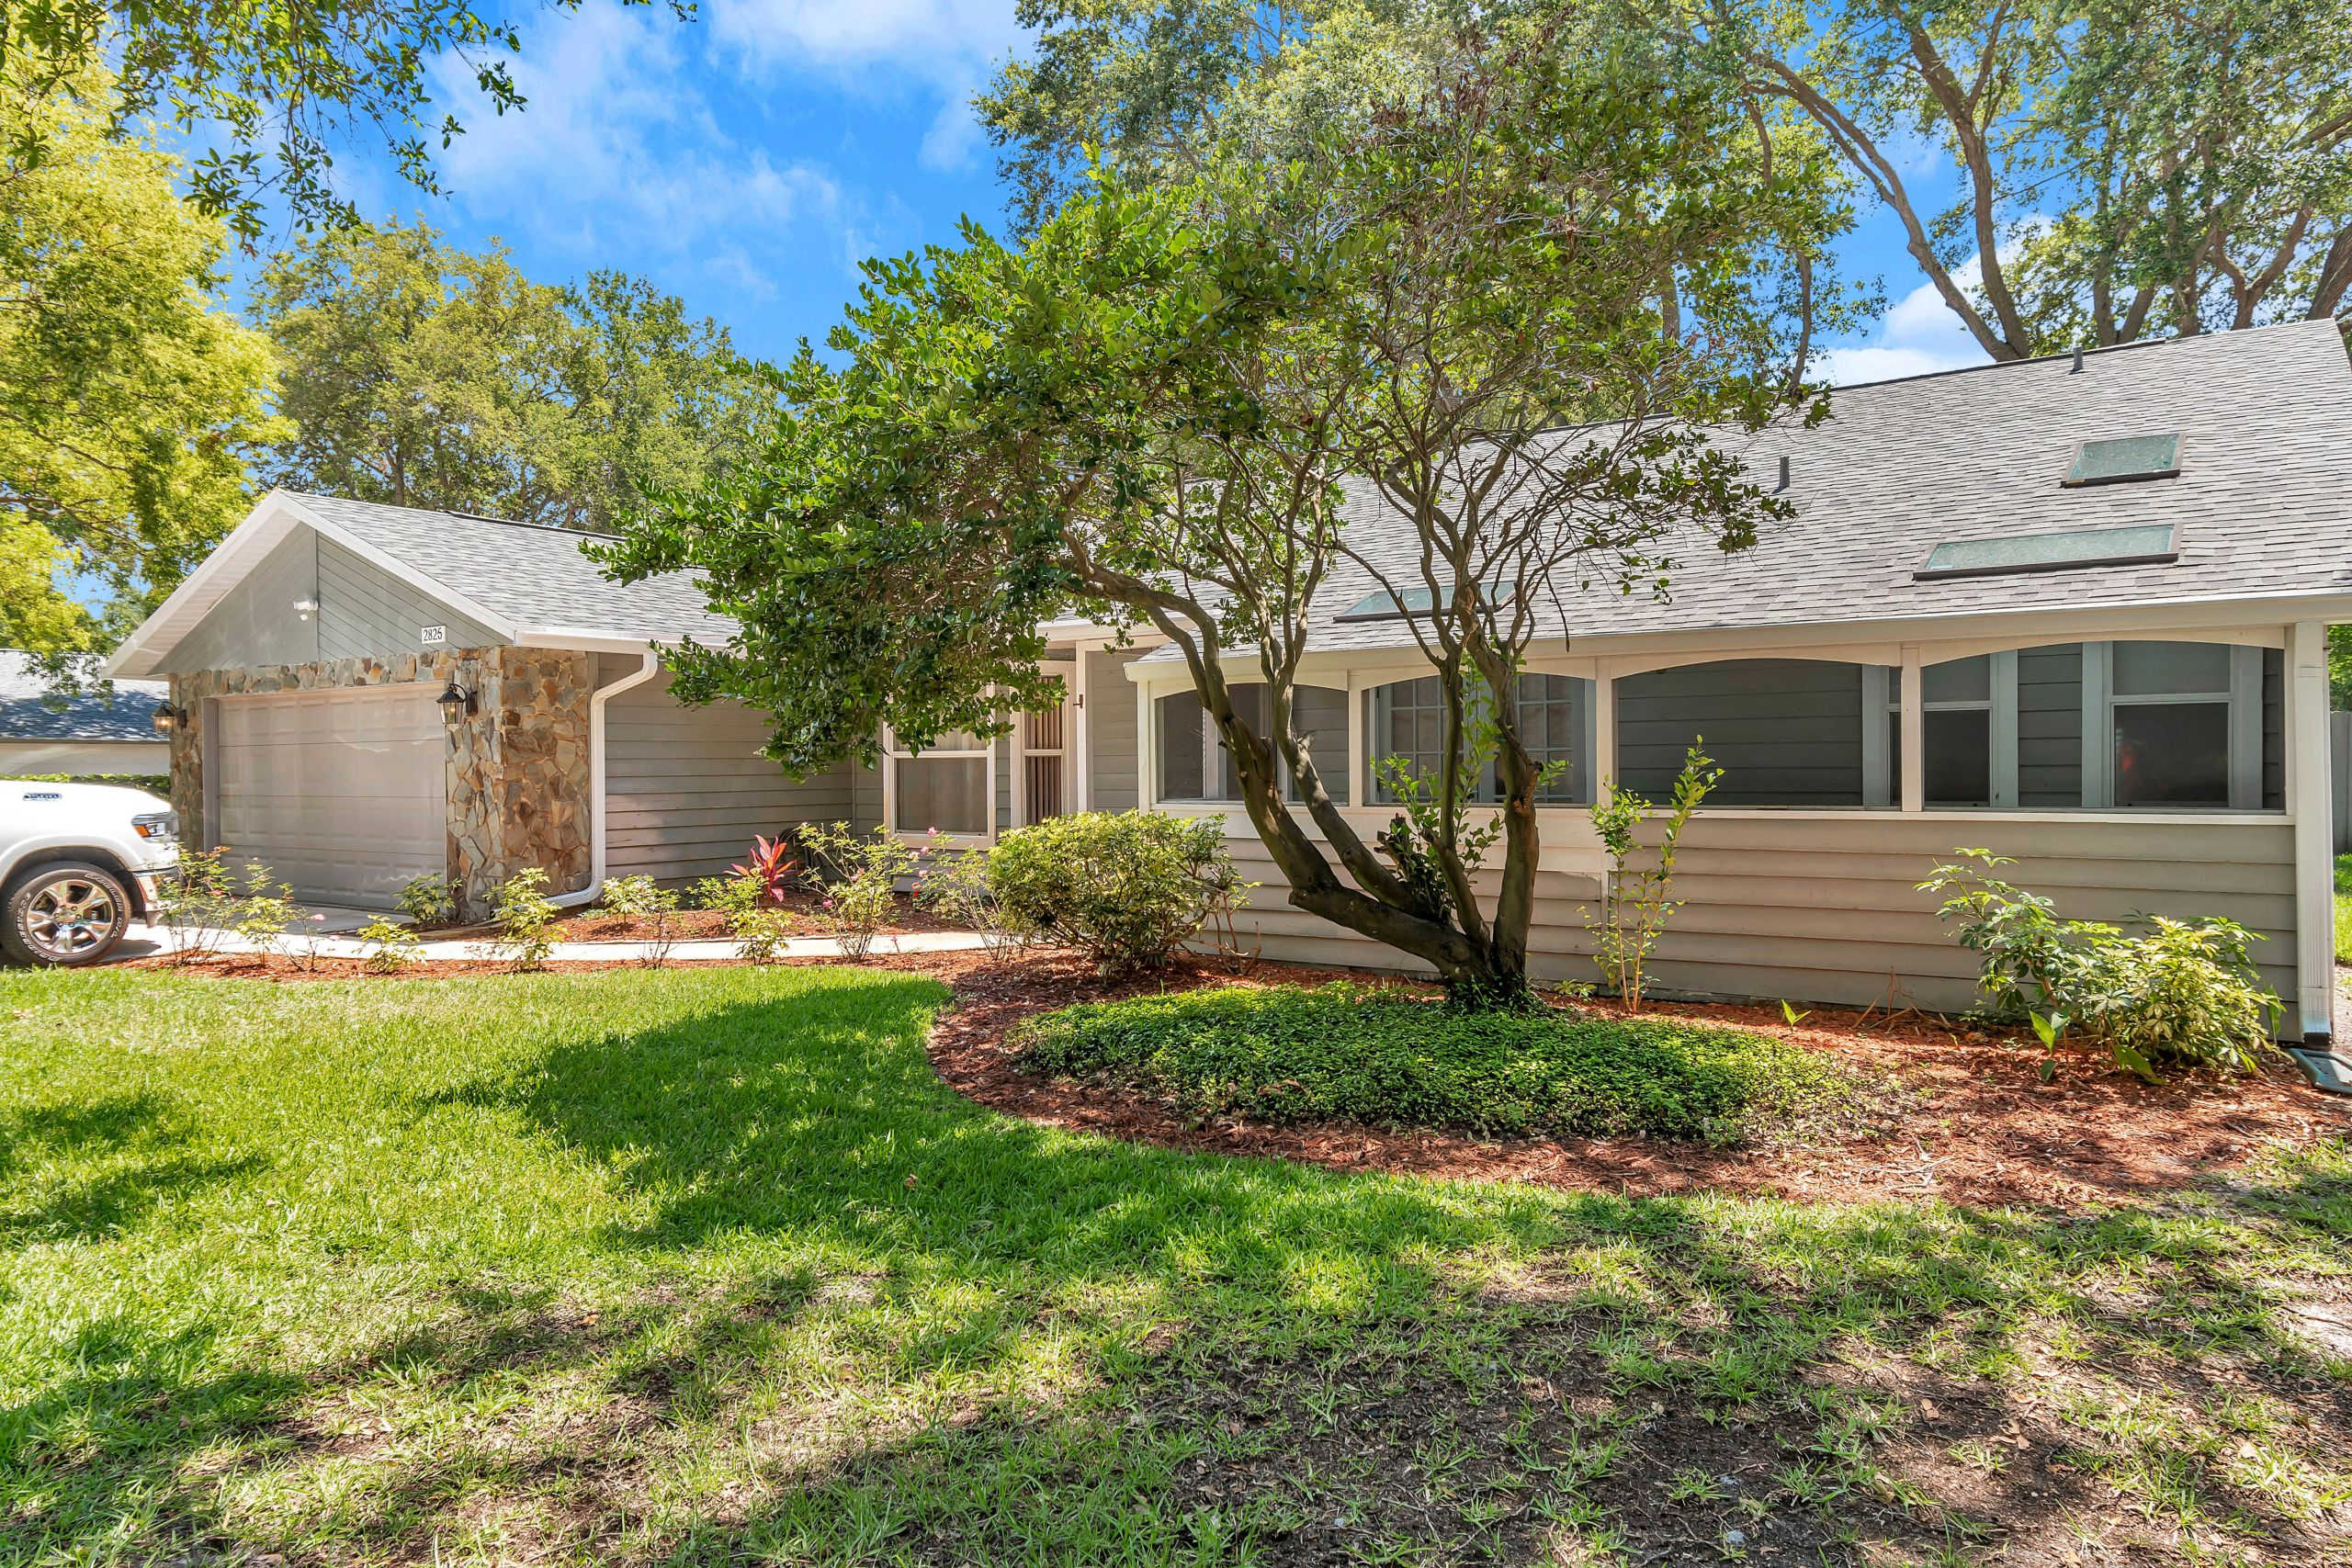 JUST LISTED - 2825 Anderson Dr S, Clearwater, Fl 33761